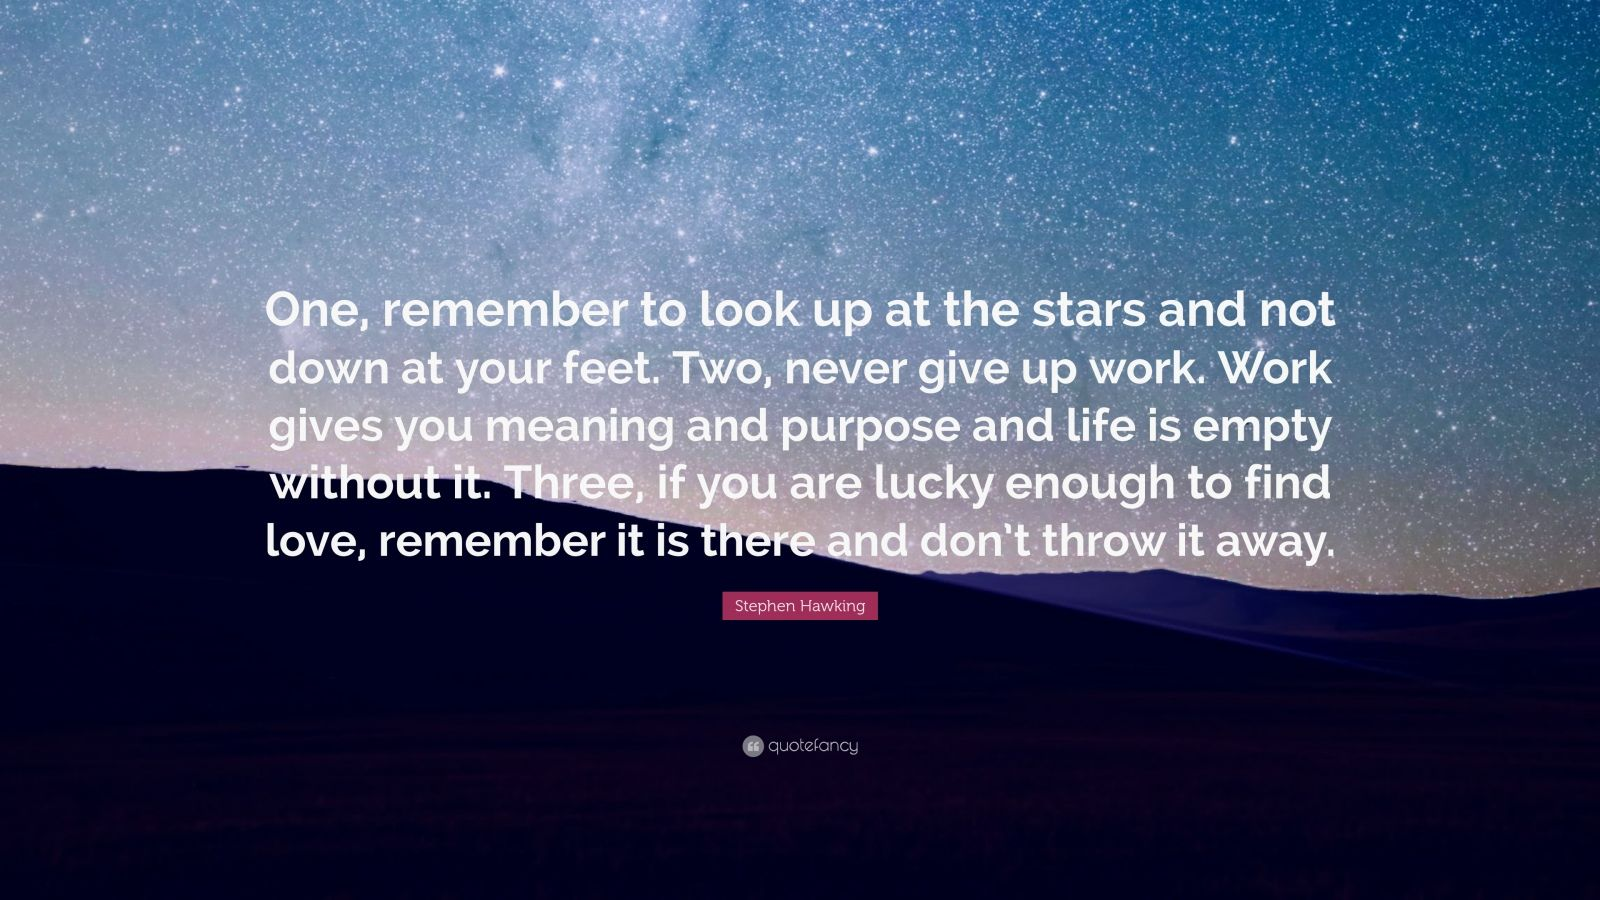 "Stephen Hawking Quote: ""One, remember to look up at the stars and not down at your feet. Two, never give up work. Work gives you meaning and purpose and life is empty without it. Three, if you are lucky enough to find love, remember it is there and don't throw it away."""